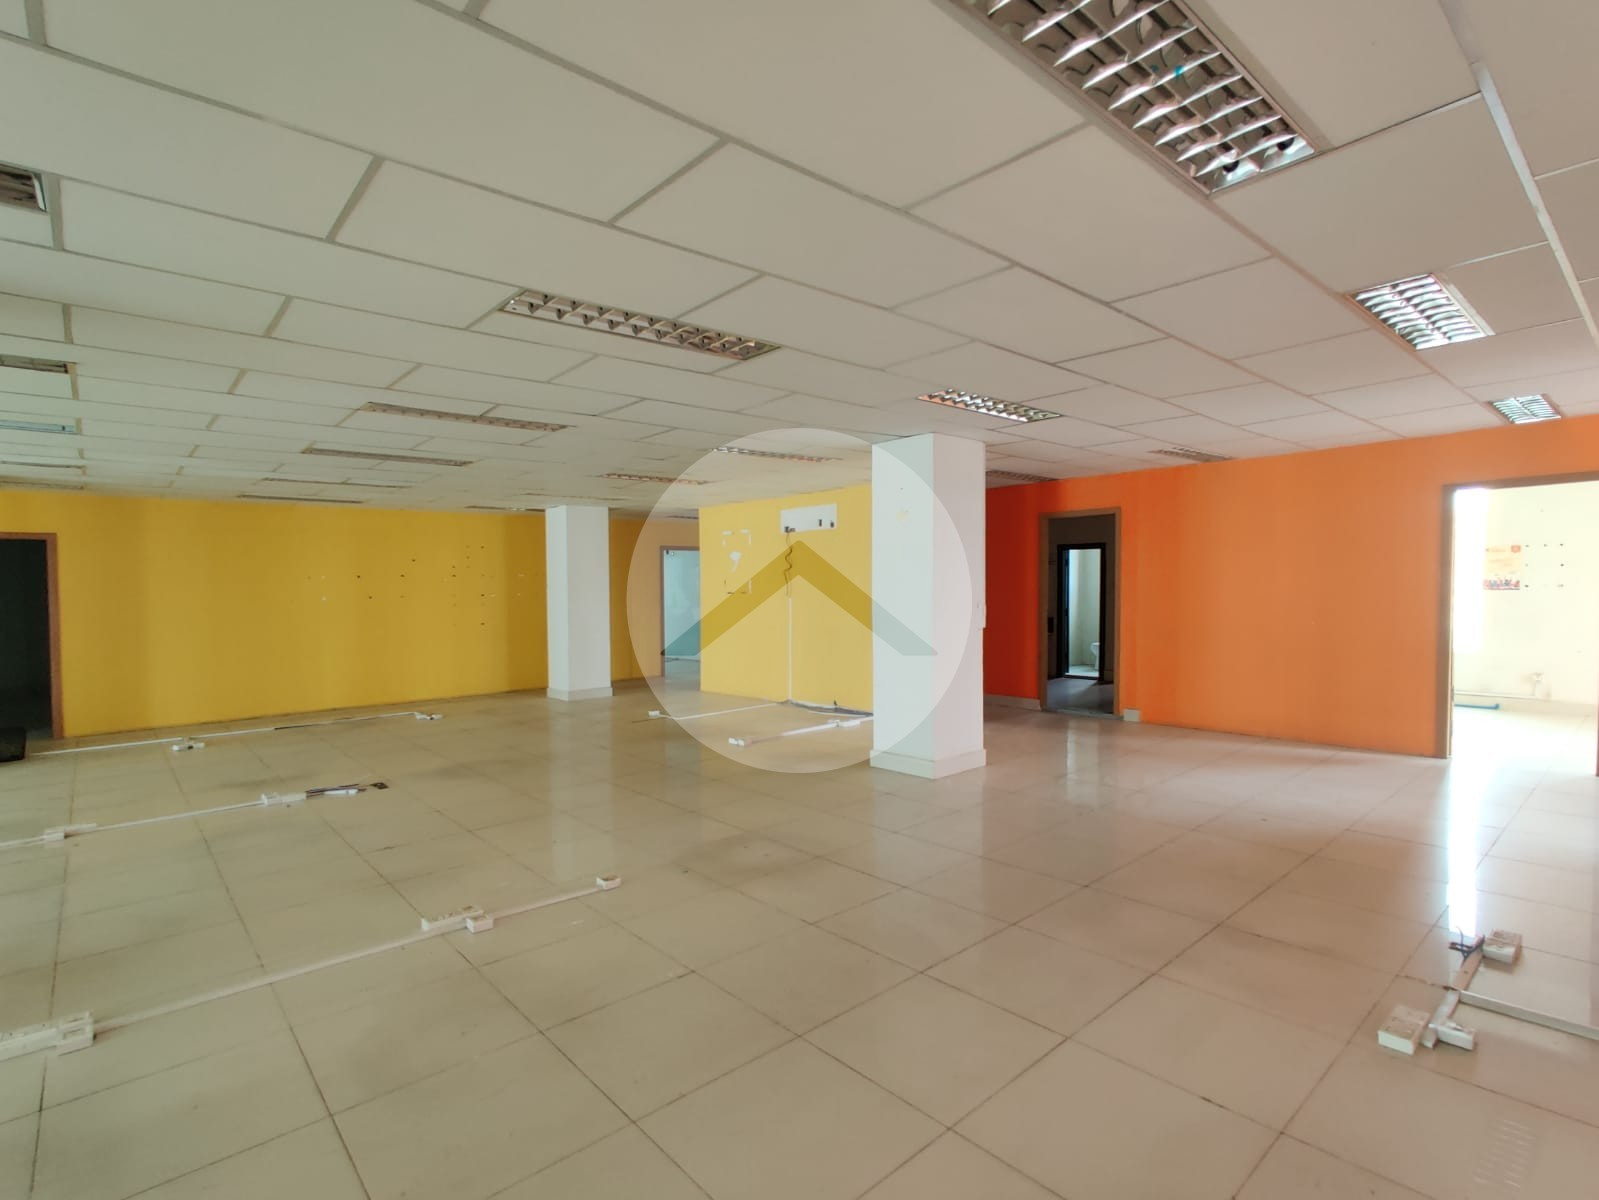 580 Sqm Office Space For Rent in Tonle Bassac - Phnom Penh